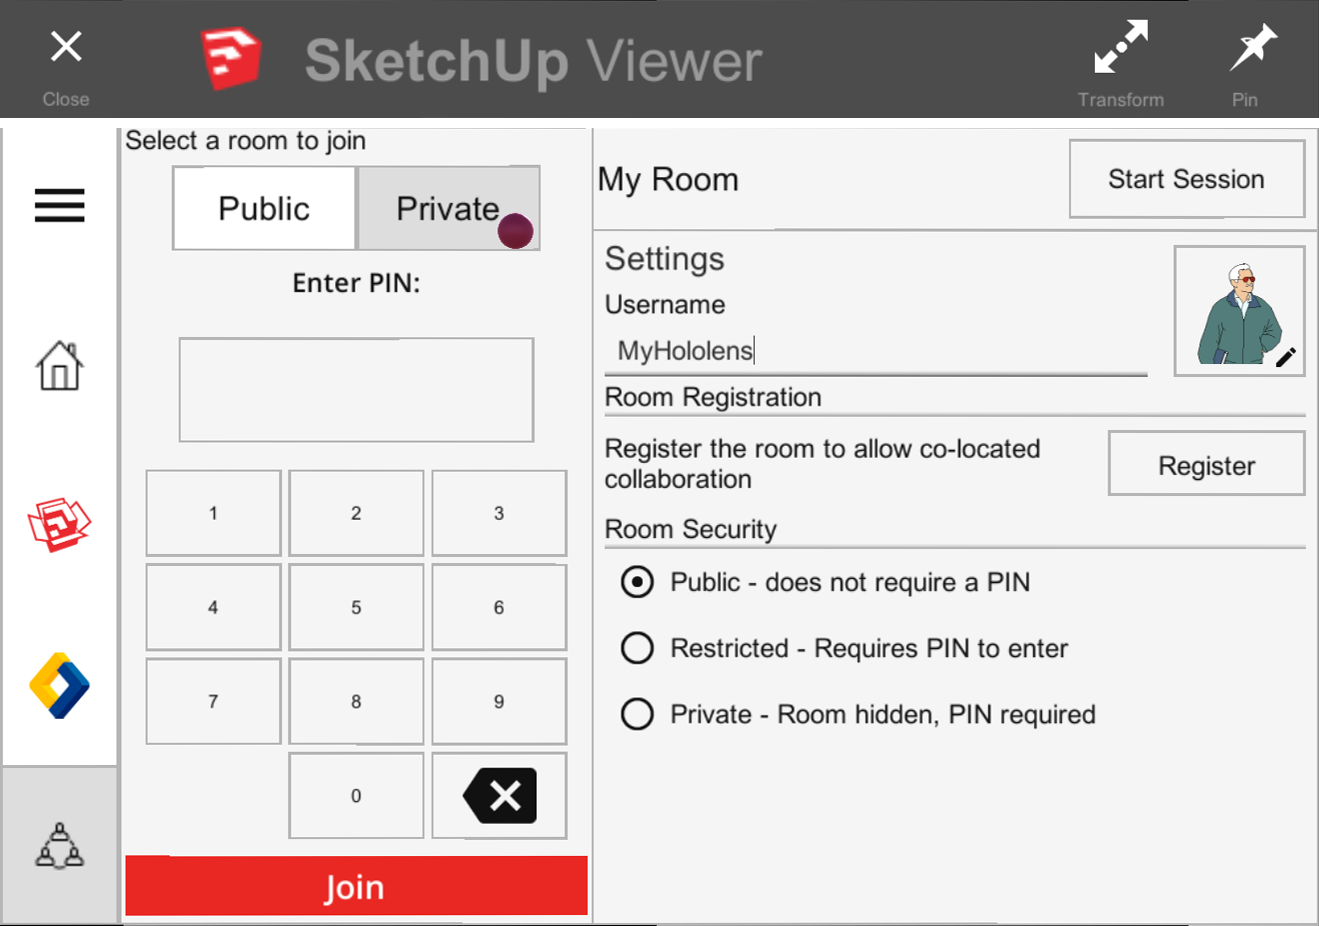 You can join a public or private collaboration room in SketchUp Viewer for HoloLens